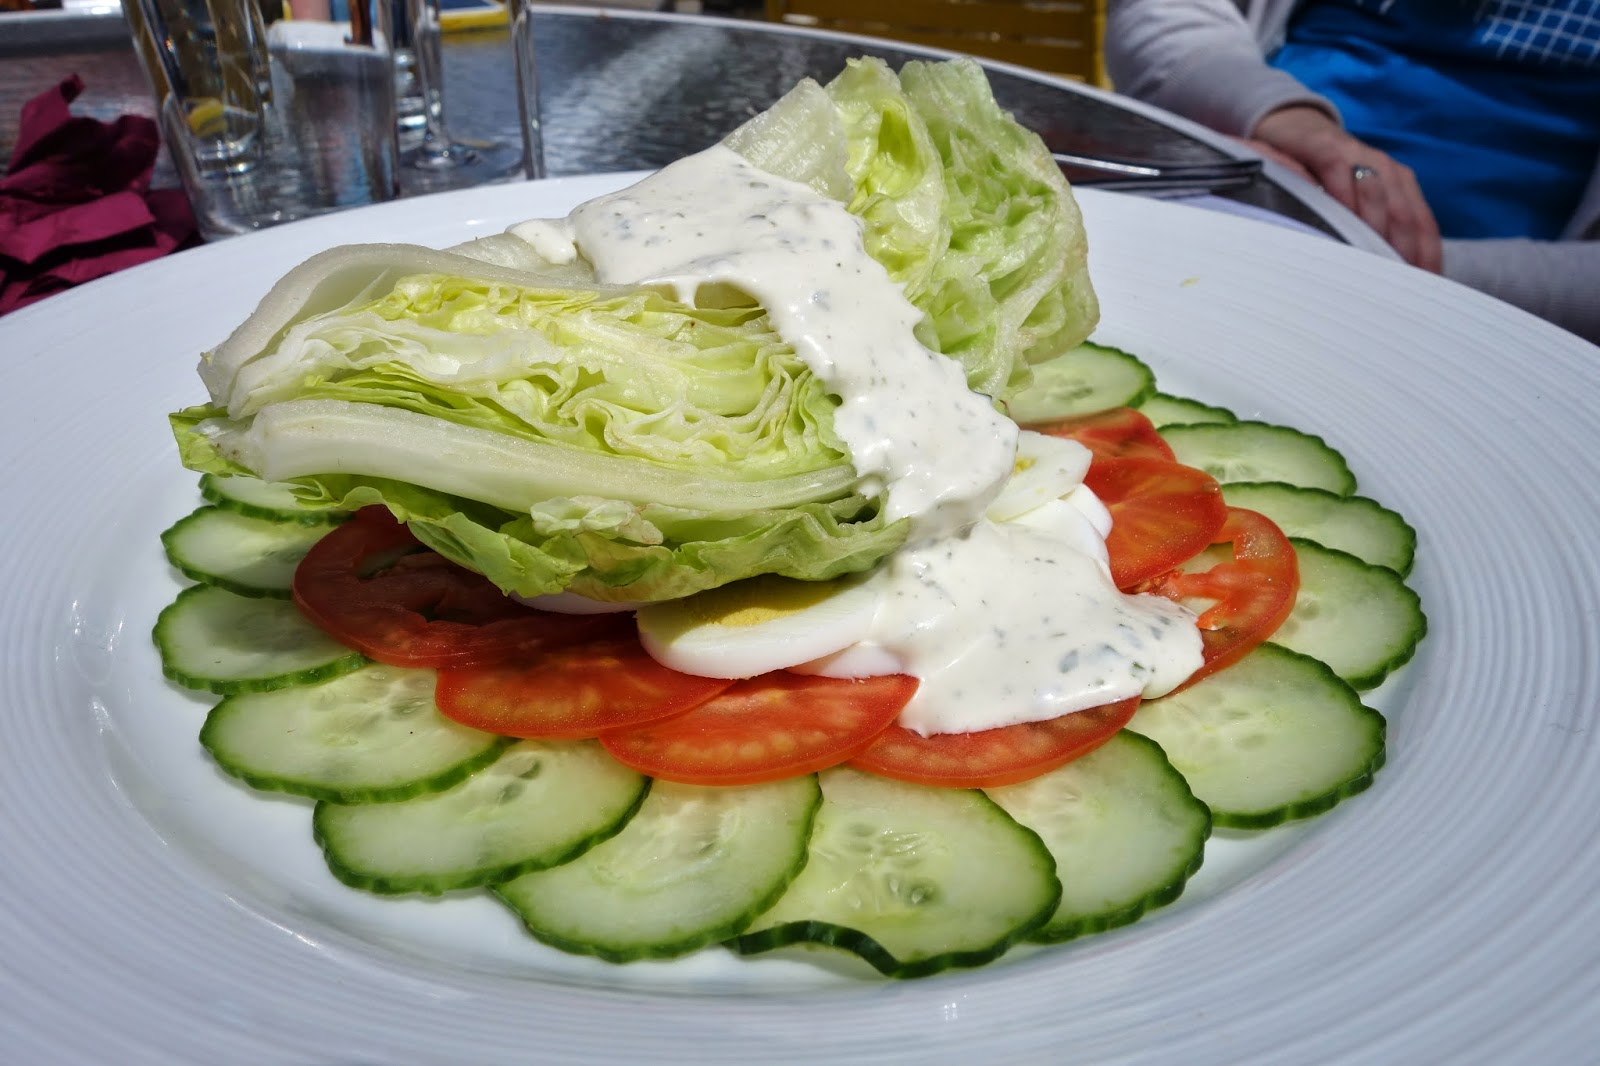 Iceberg Wedge Salad with Dressing | Recipes Squared